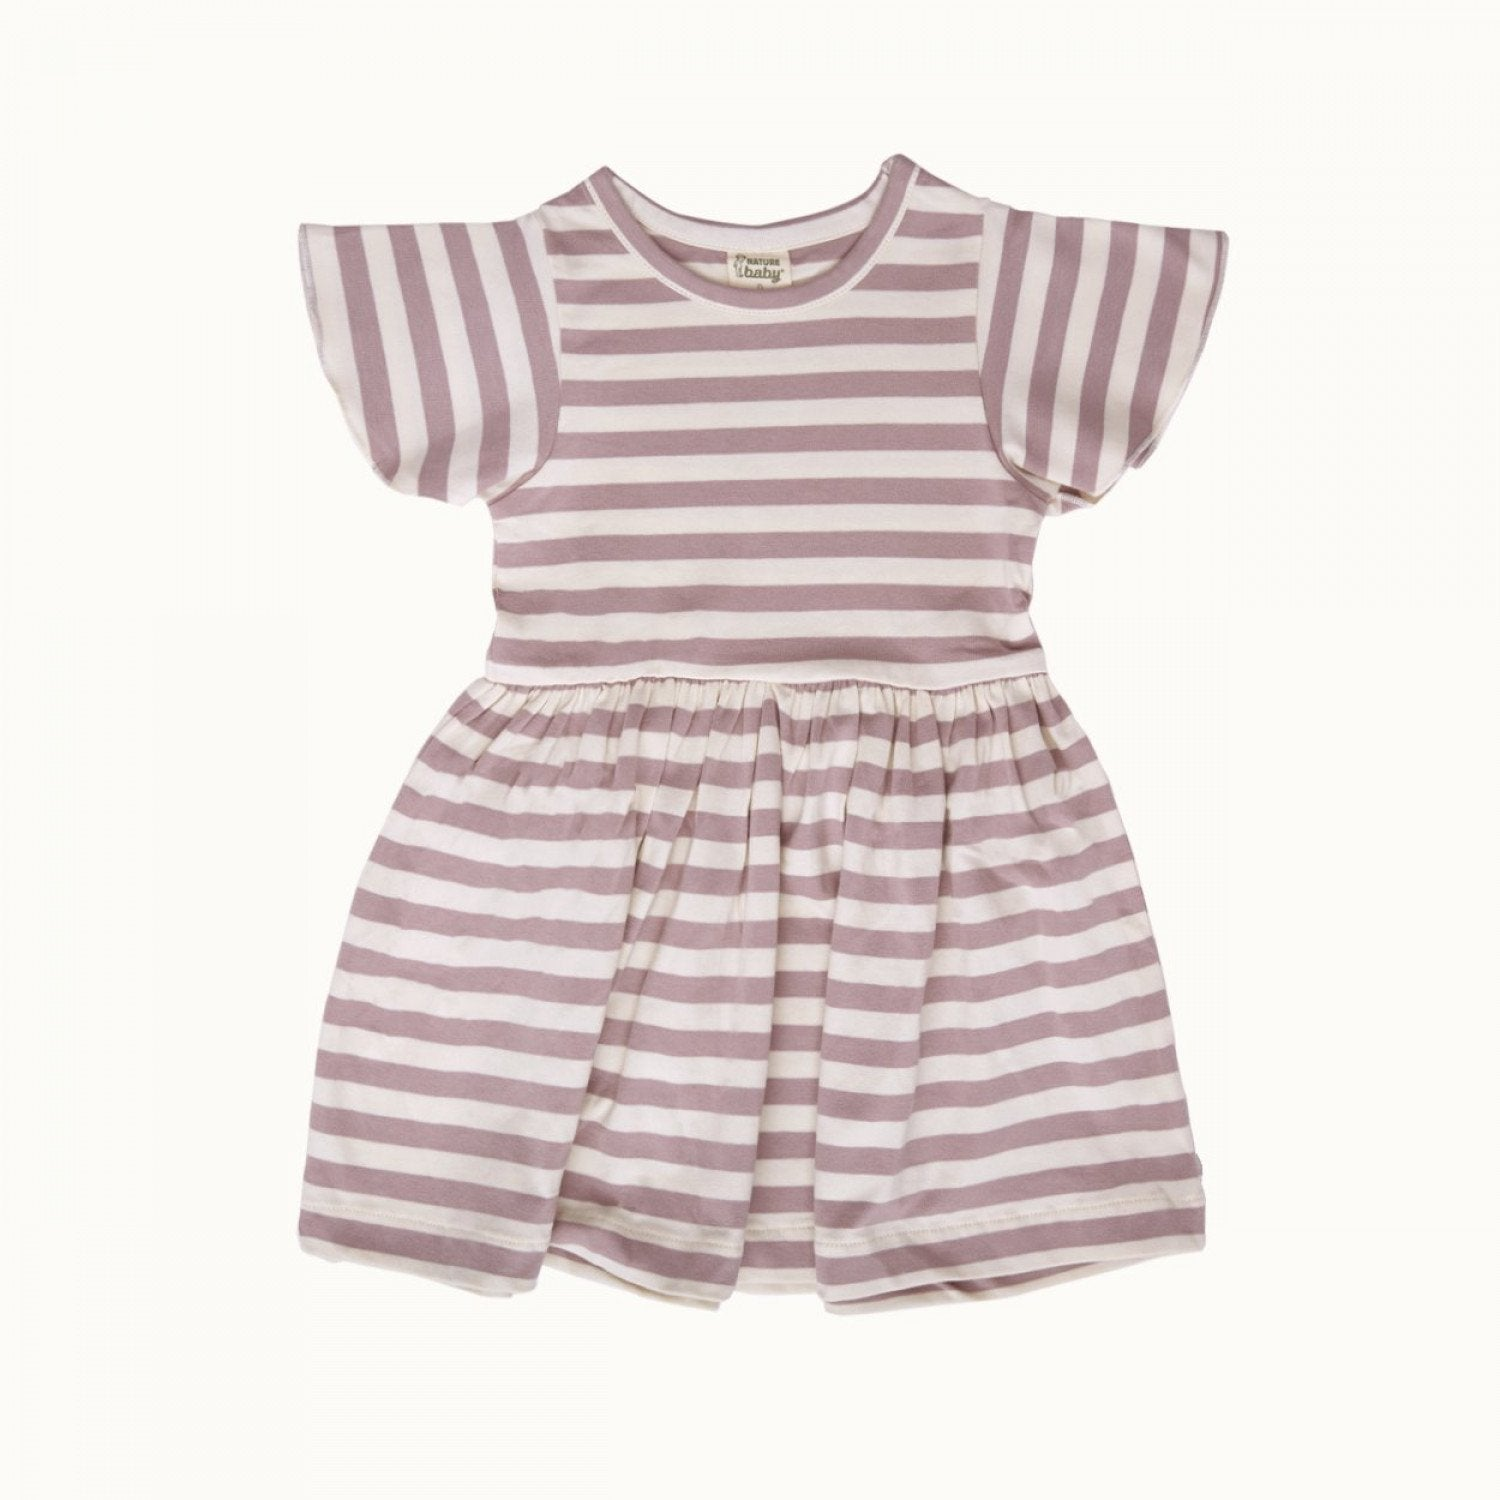 Lilac Sea Stripe / 6-12 Months Nature Baby Organic Cotton Petal Sleeve Dress (Multiple Variants) - Naked Baby Eco Boutique